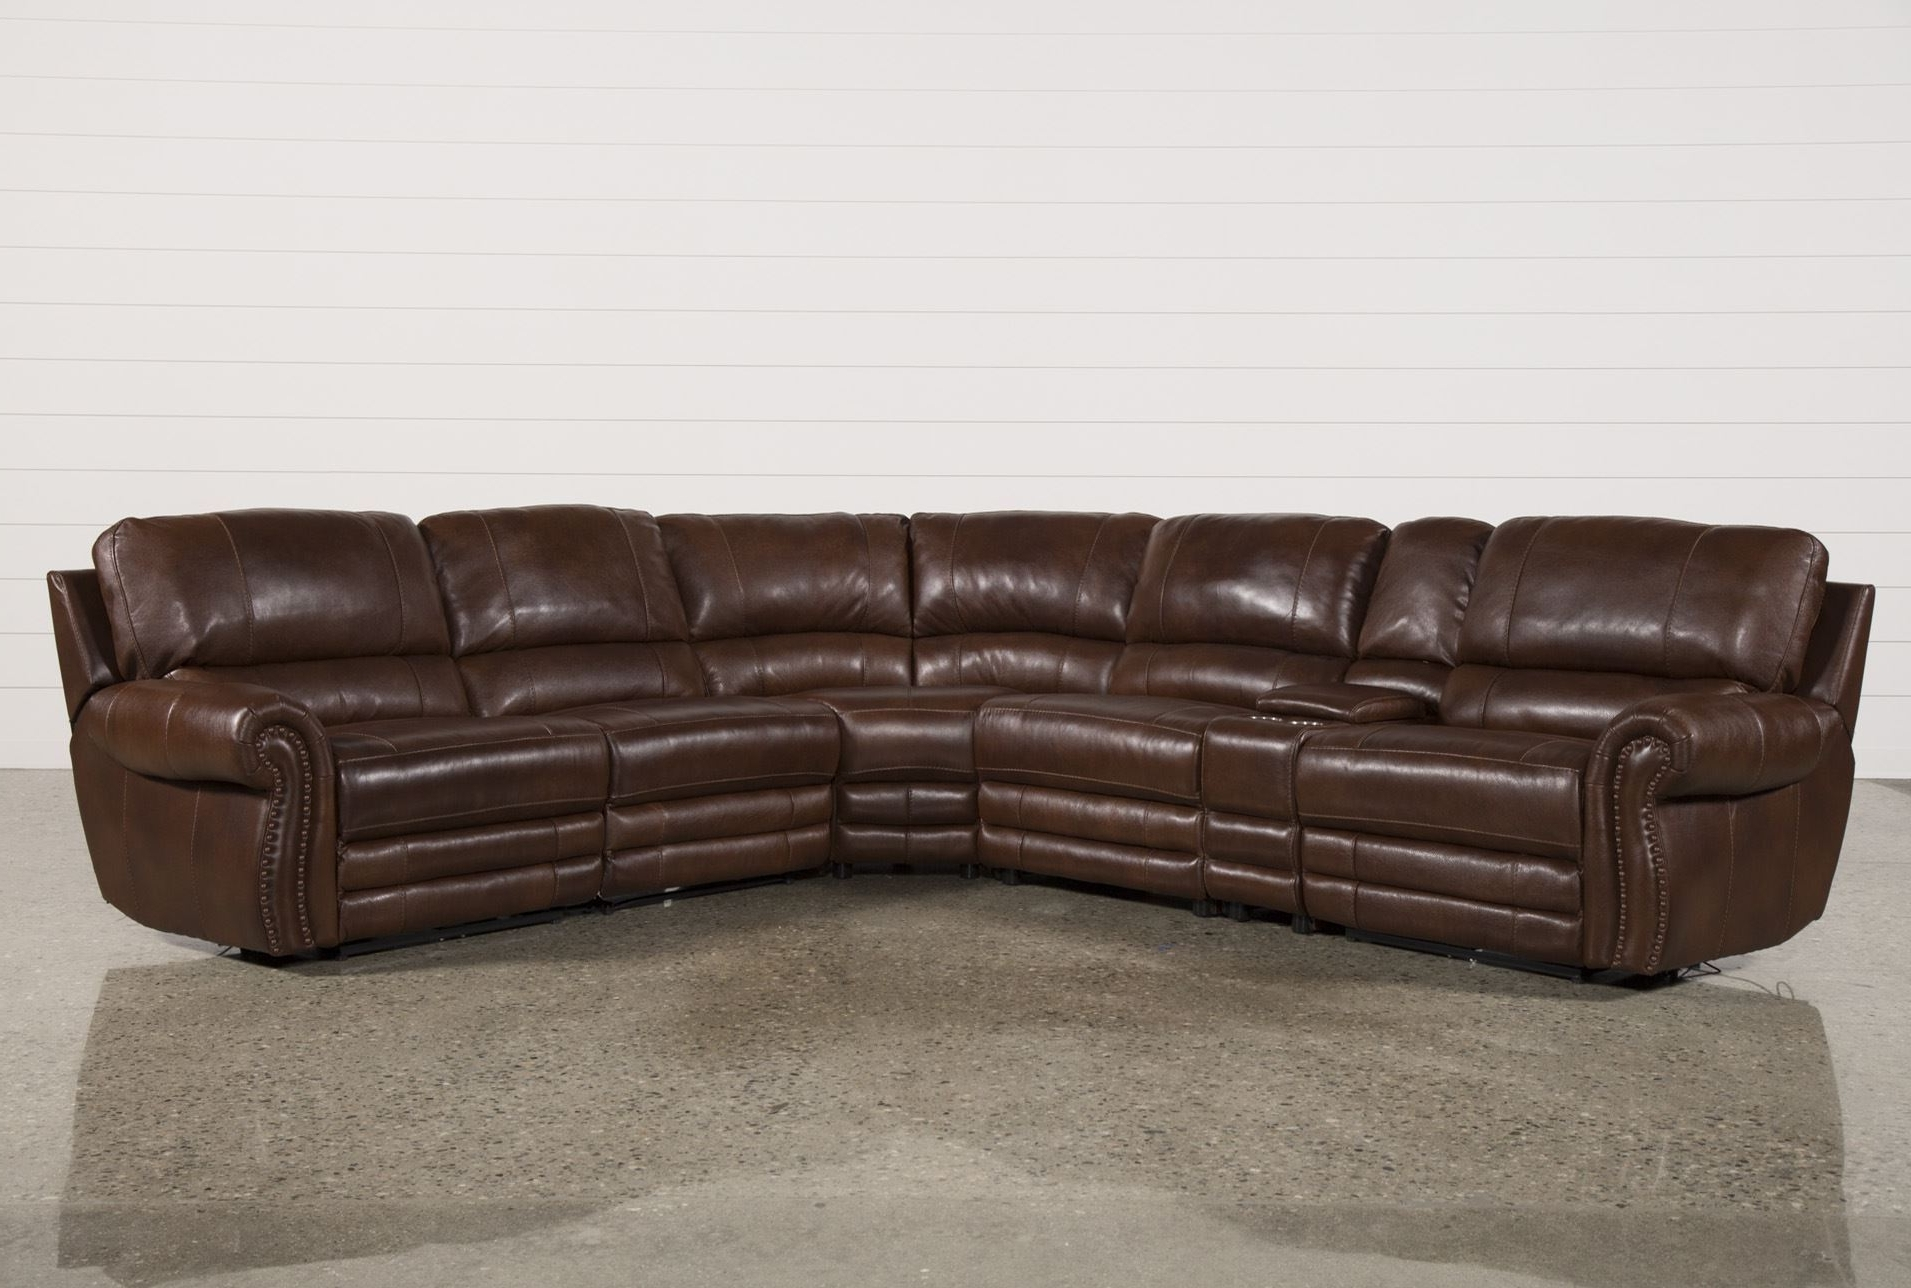 Favorite 6 Piece Leather Sectional Sofa – Radiovannes Regarding 6 Piece Leather Sectional Sofas (View 6 of 15)